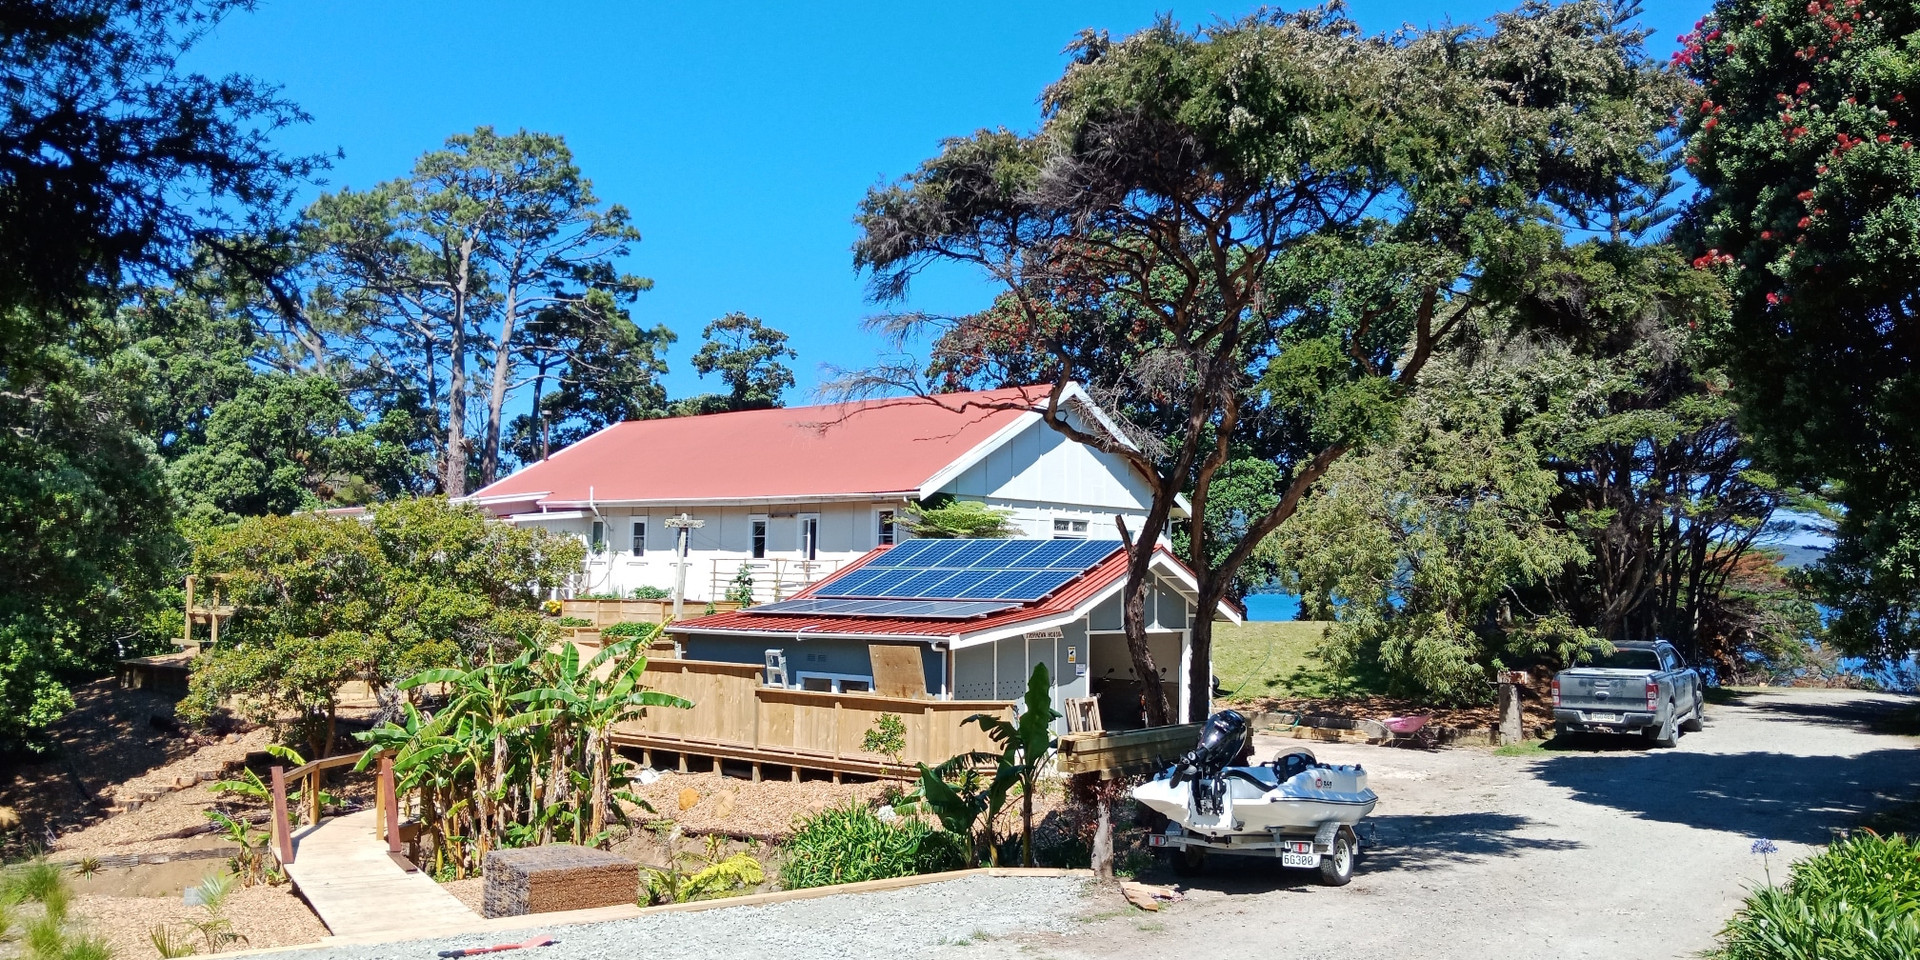 Car park view of Tryphena House. All our electricity is generated by the solar panels on the garage roof